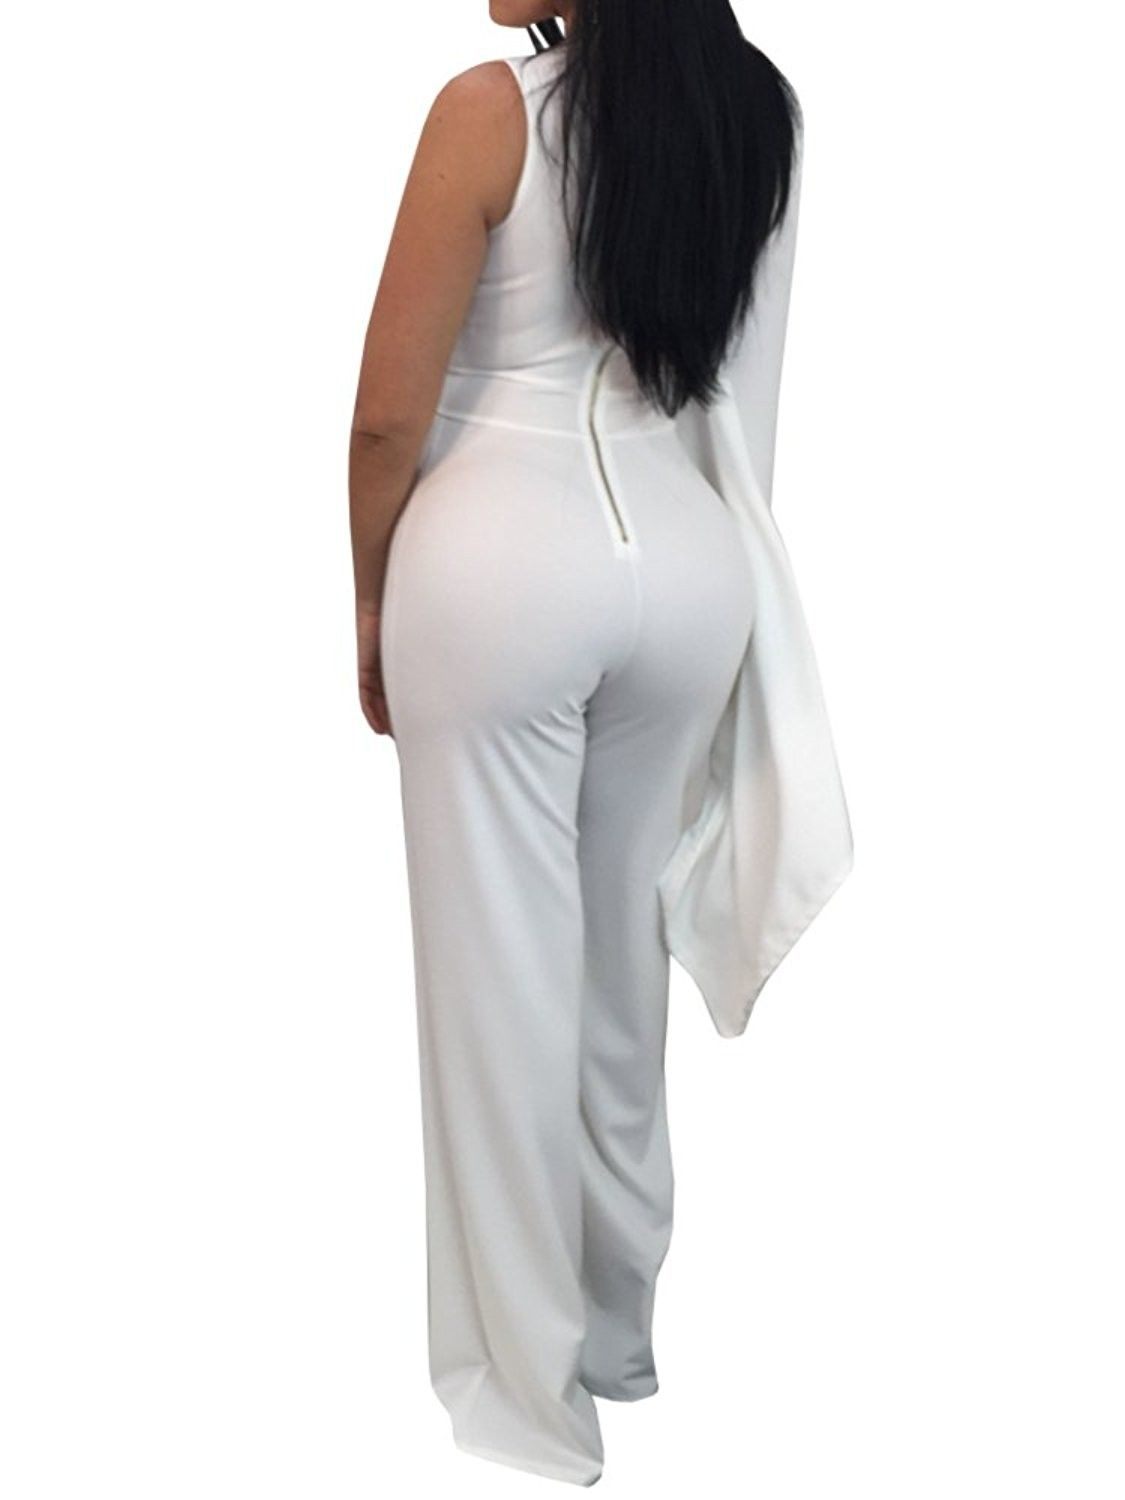 8b01dac9e770 Womens Elegant Jumpsuits Bodycon One Shoulder Wide Leg Party ...